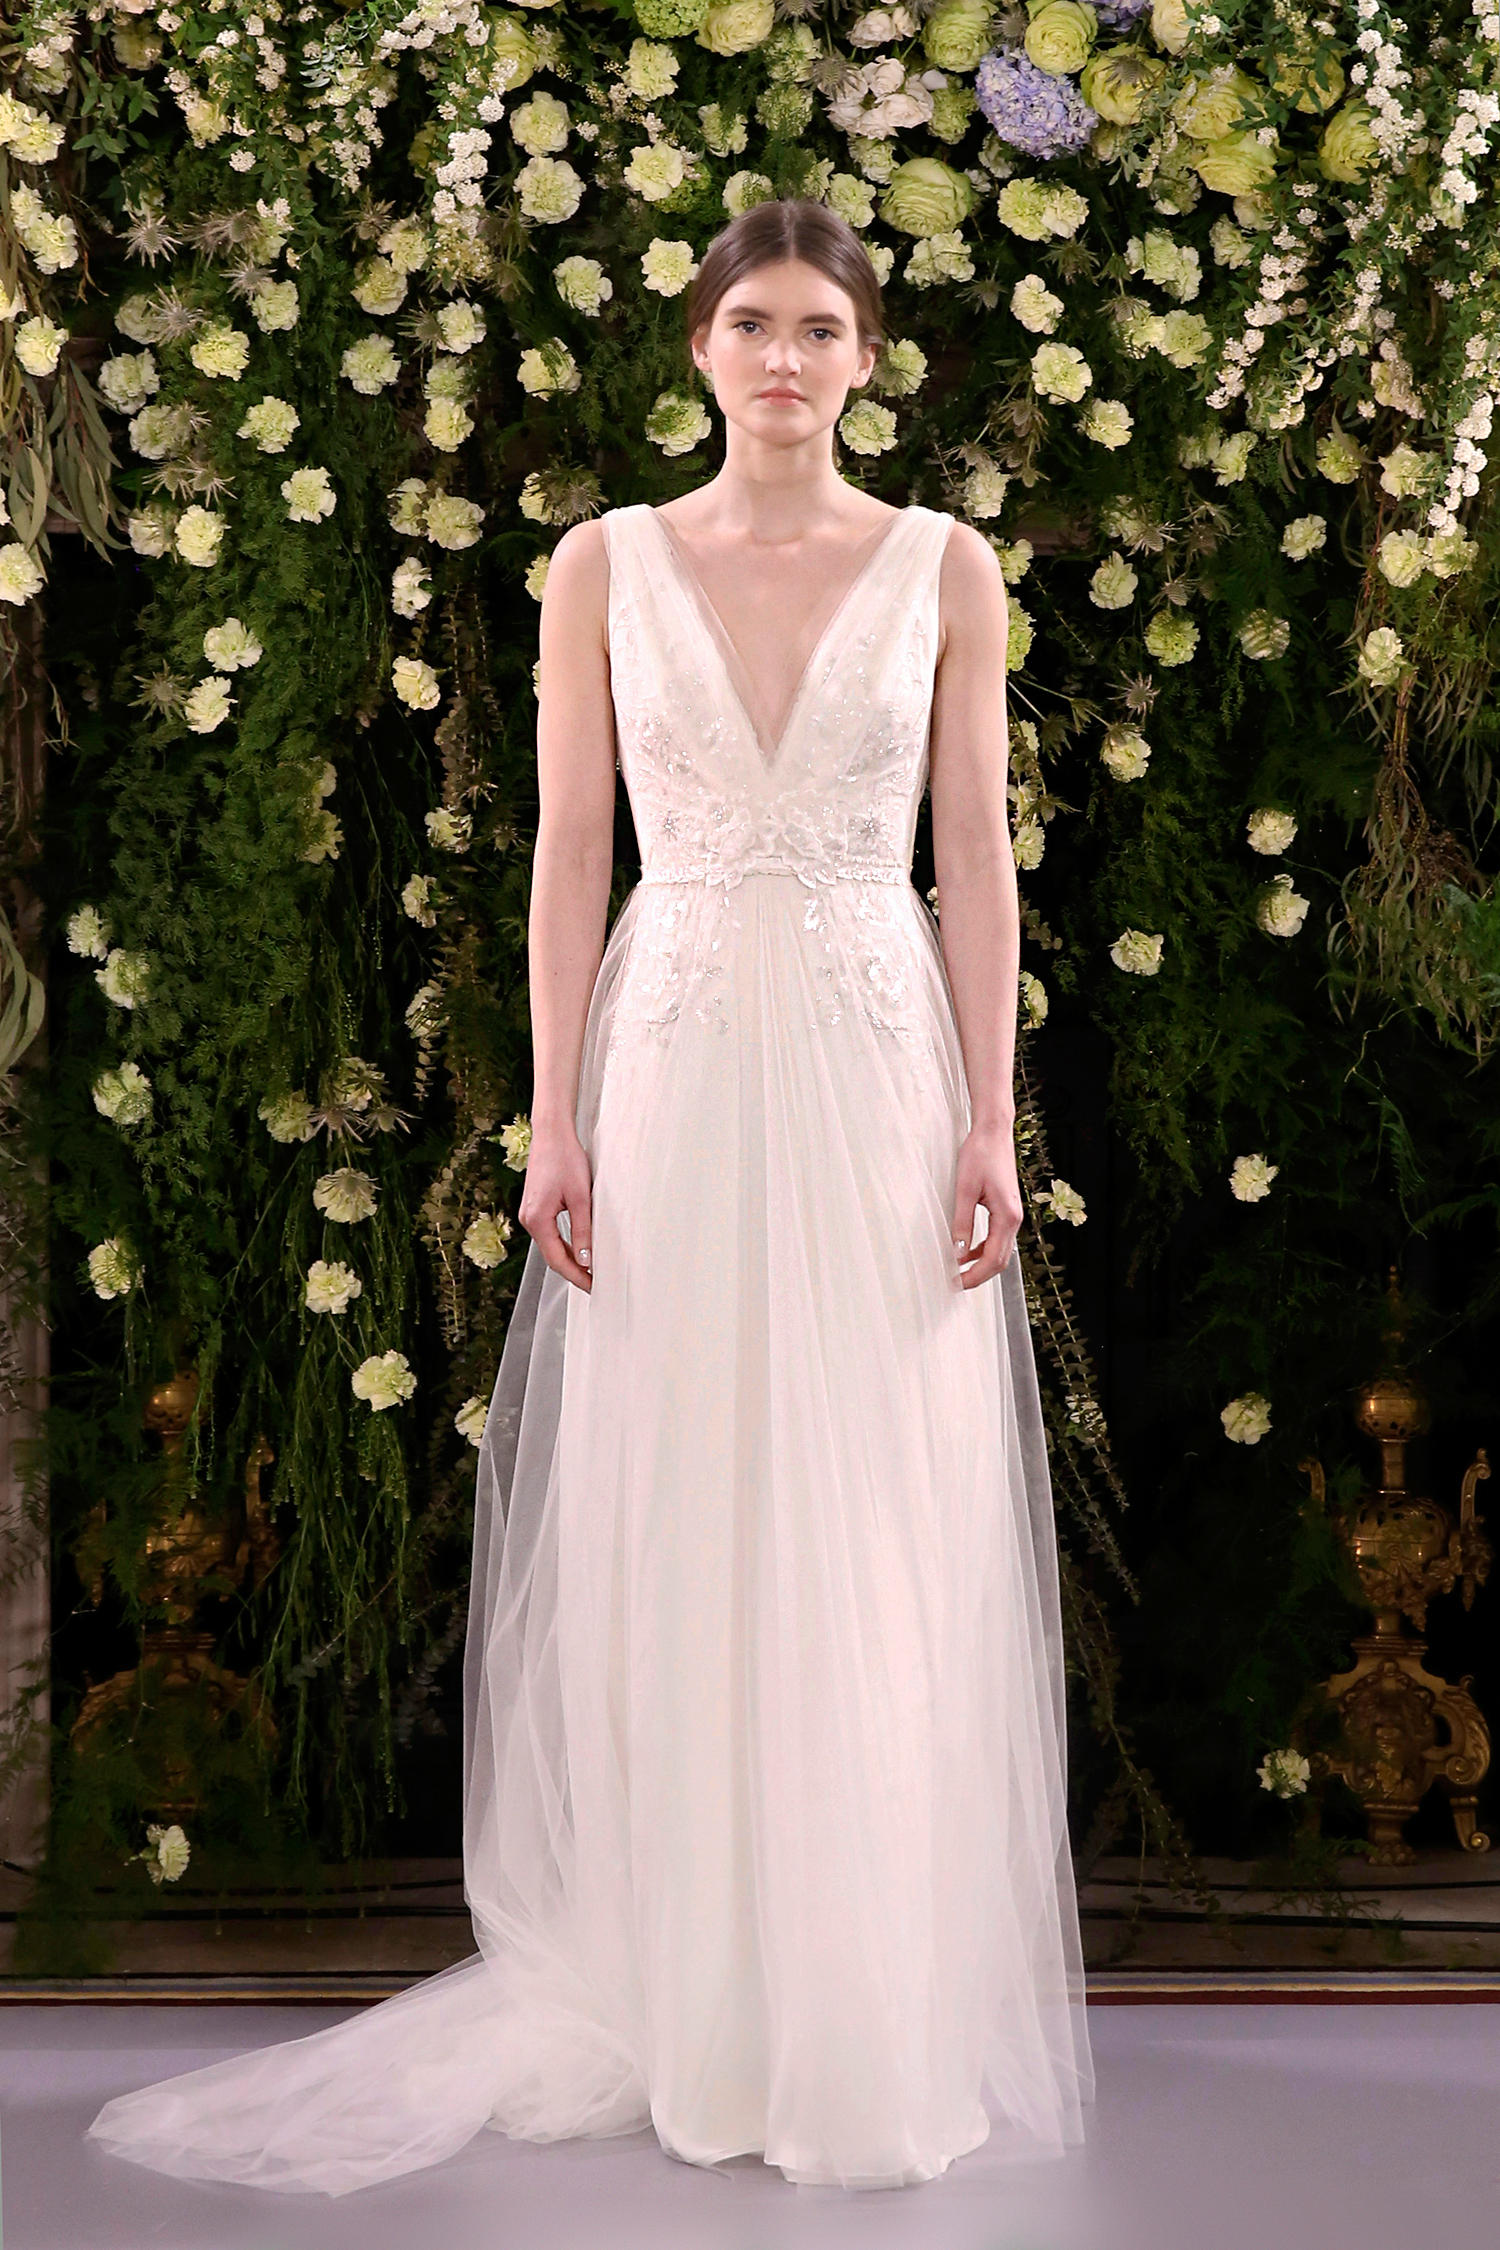 adfb249b42a93 Jenny Packham Spring 2019 Wedding Dress Collection | Martha Stewart ...